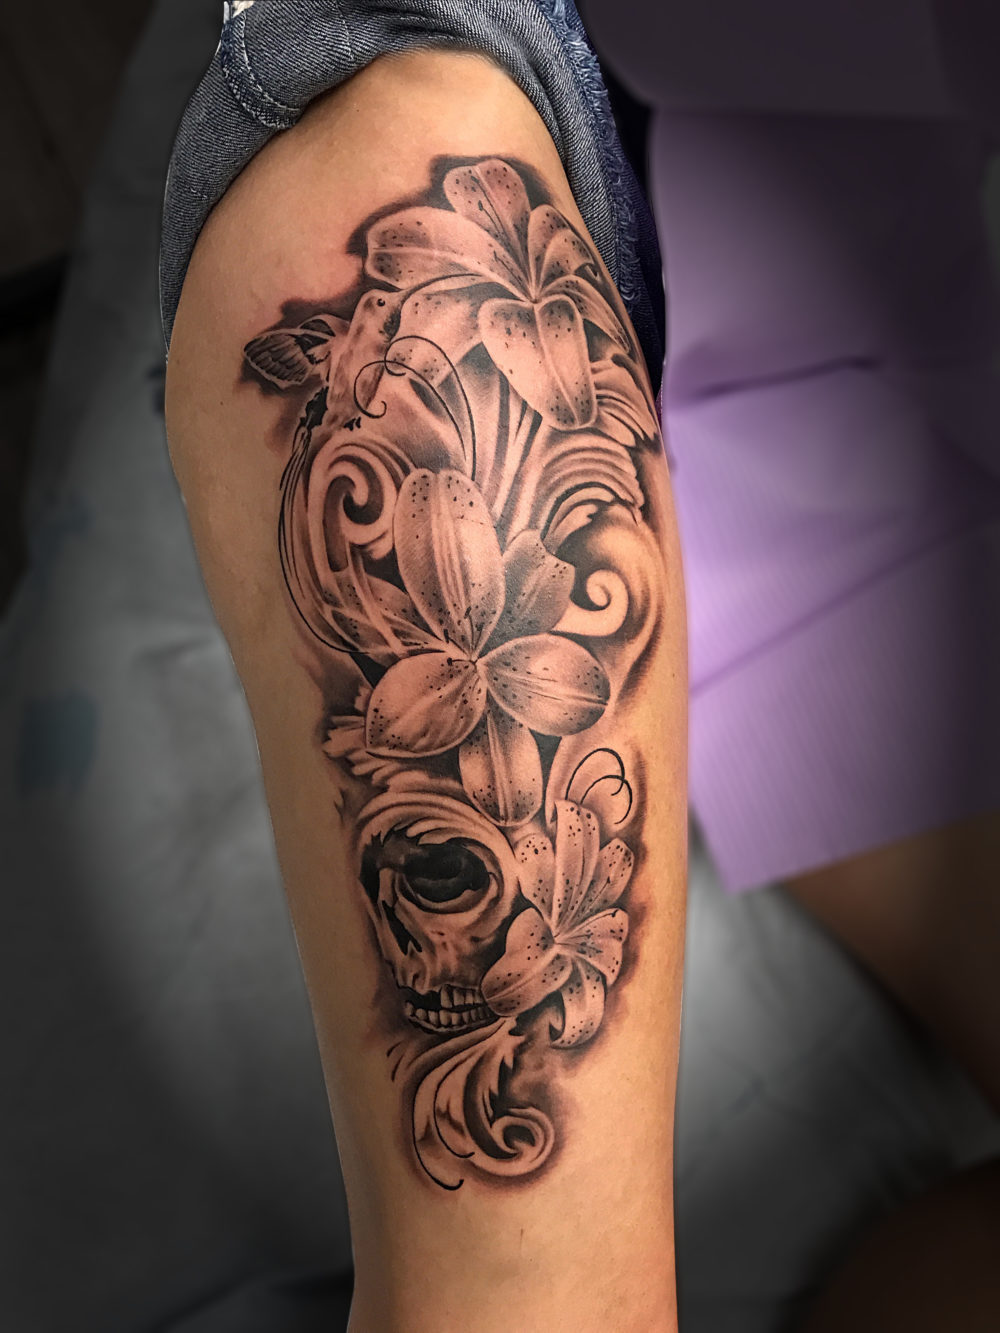 Q Tattoo in Huntington Beach - Quan - leg floral skull